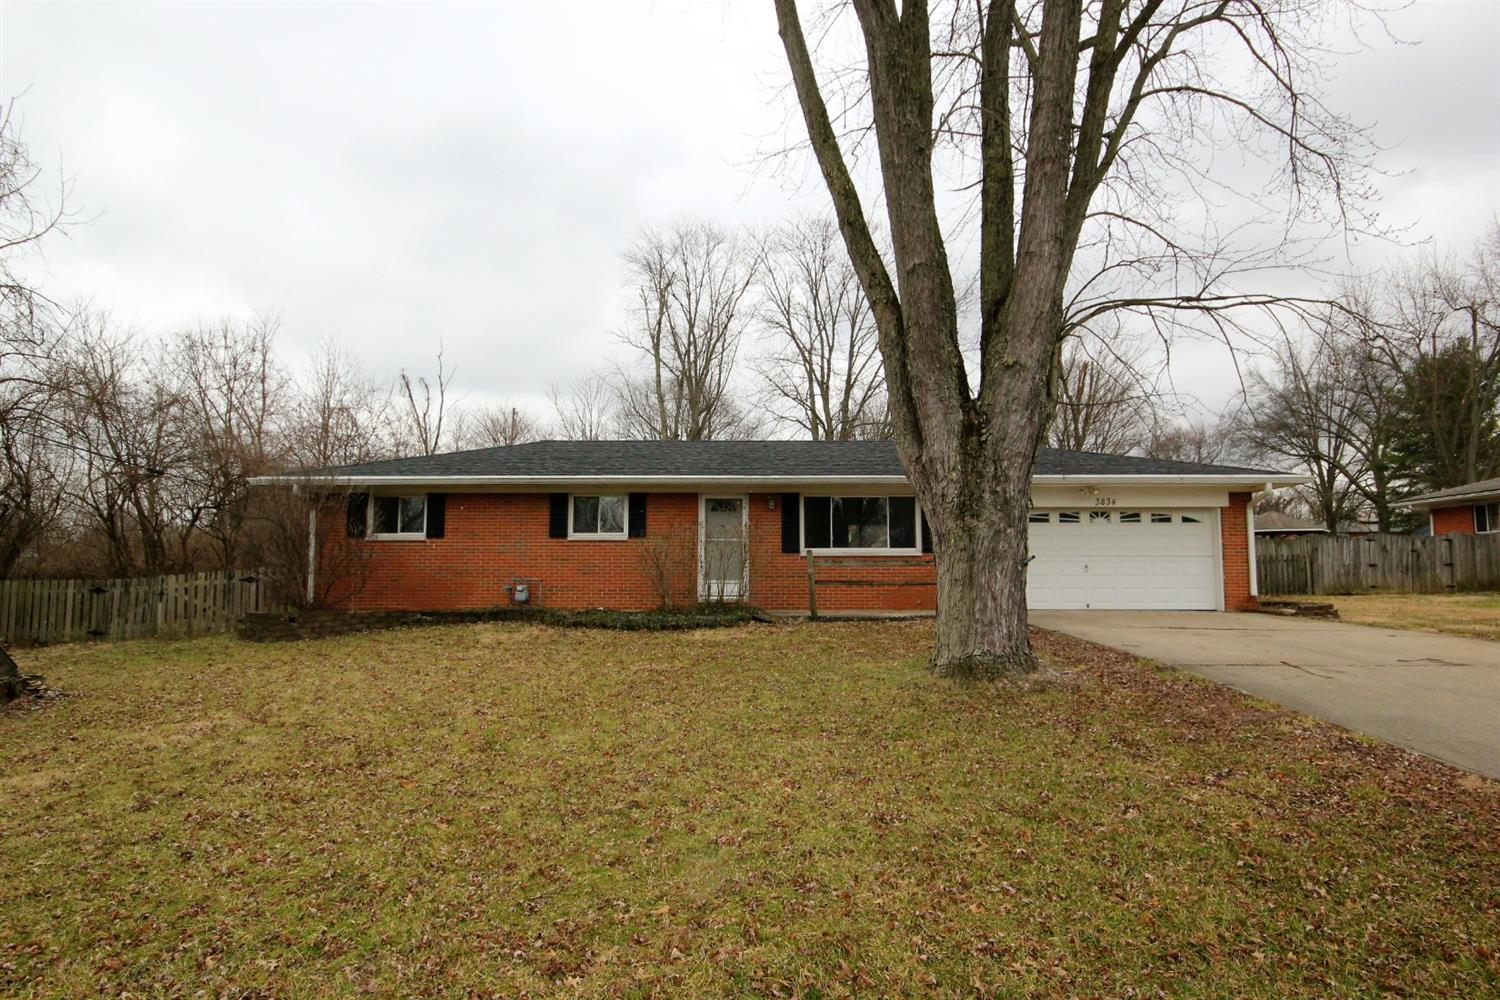 3834 Ruby Dr Franklin Twp Oh 45005 Listing Details Mls